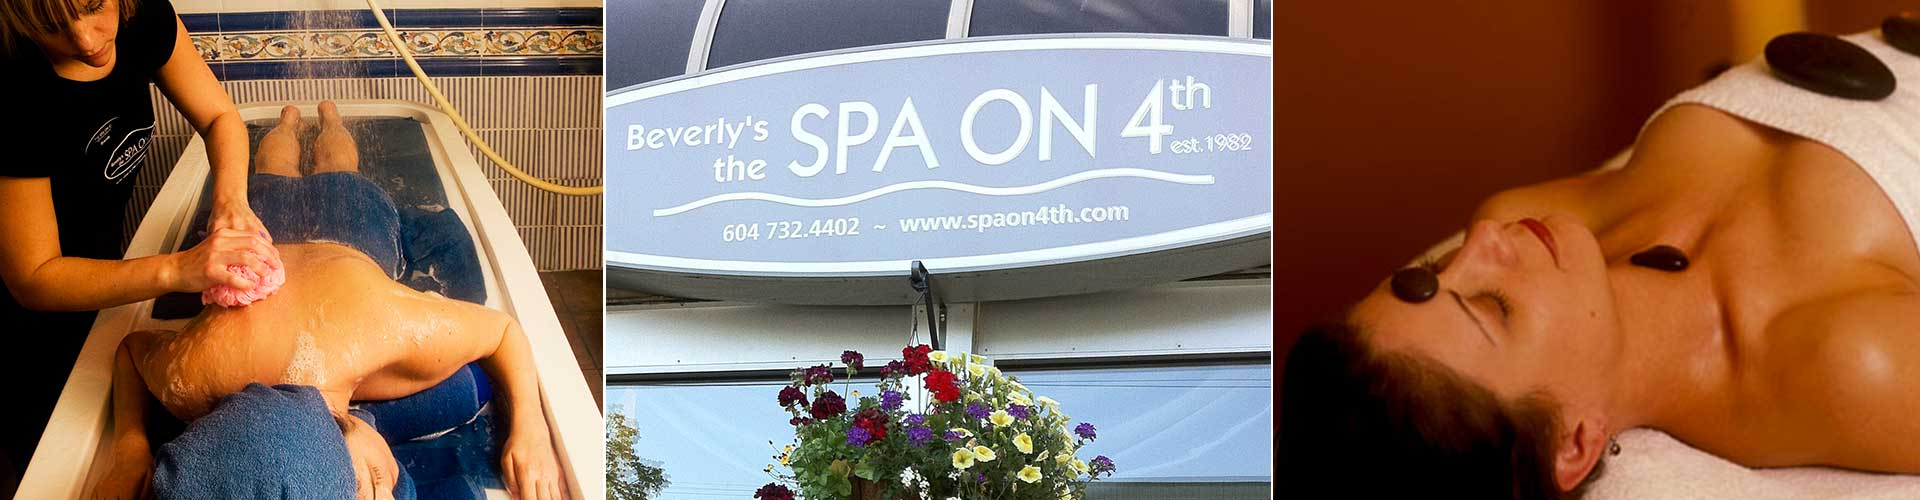 spas-in-vancouver-spaon4th-banner-2014